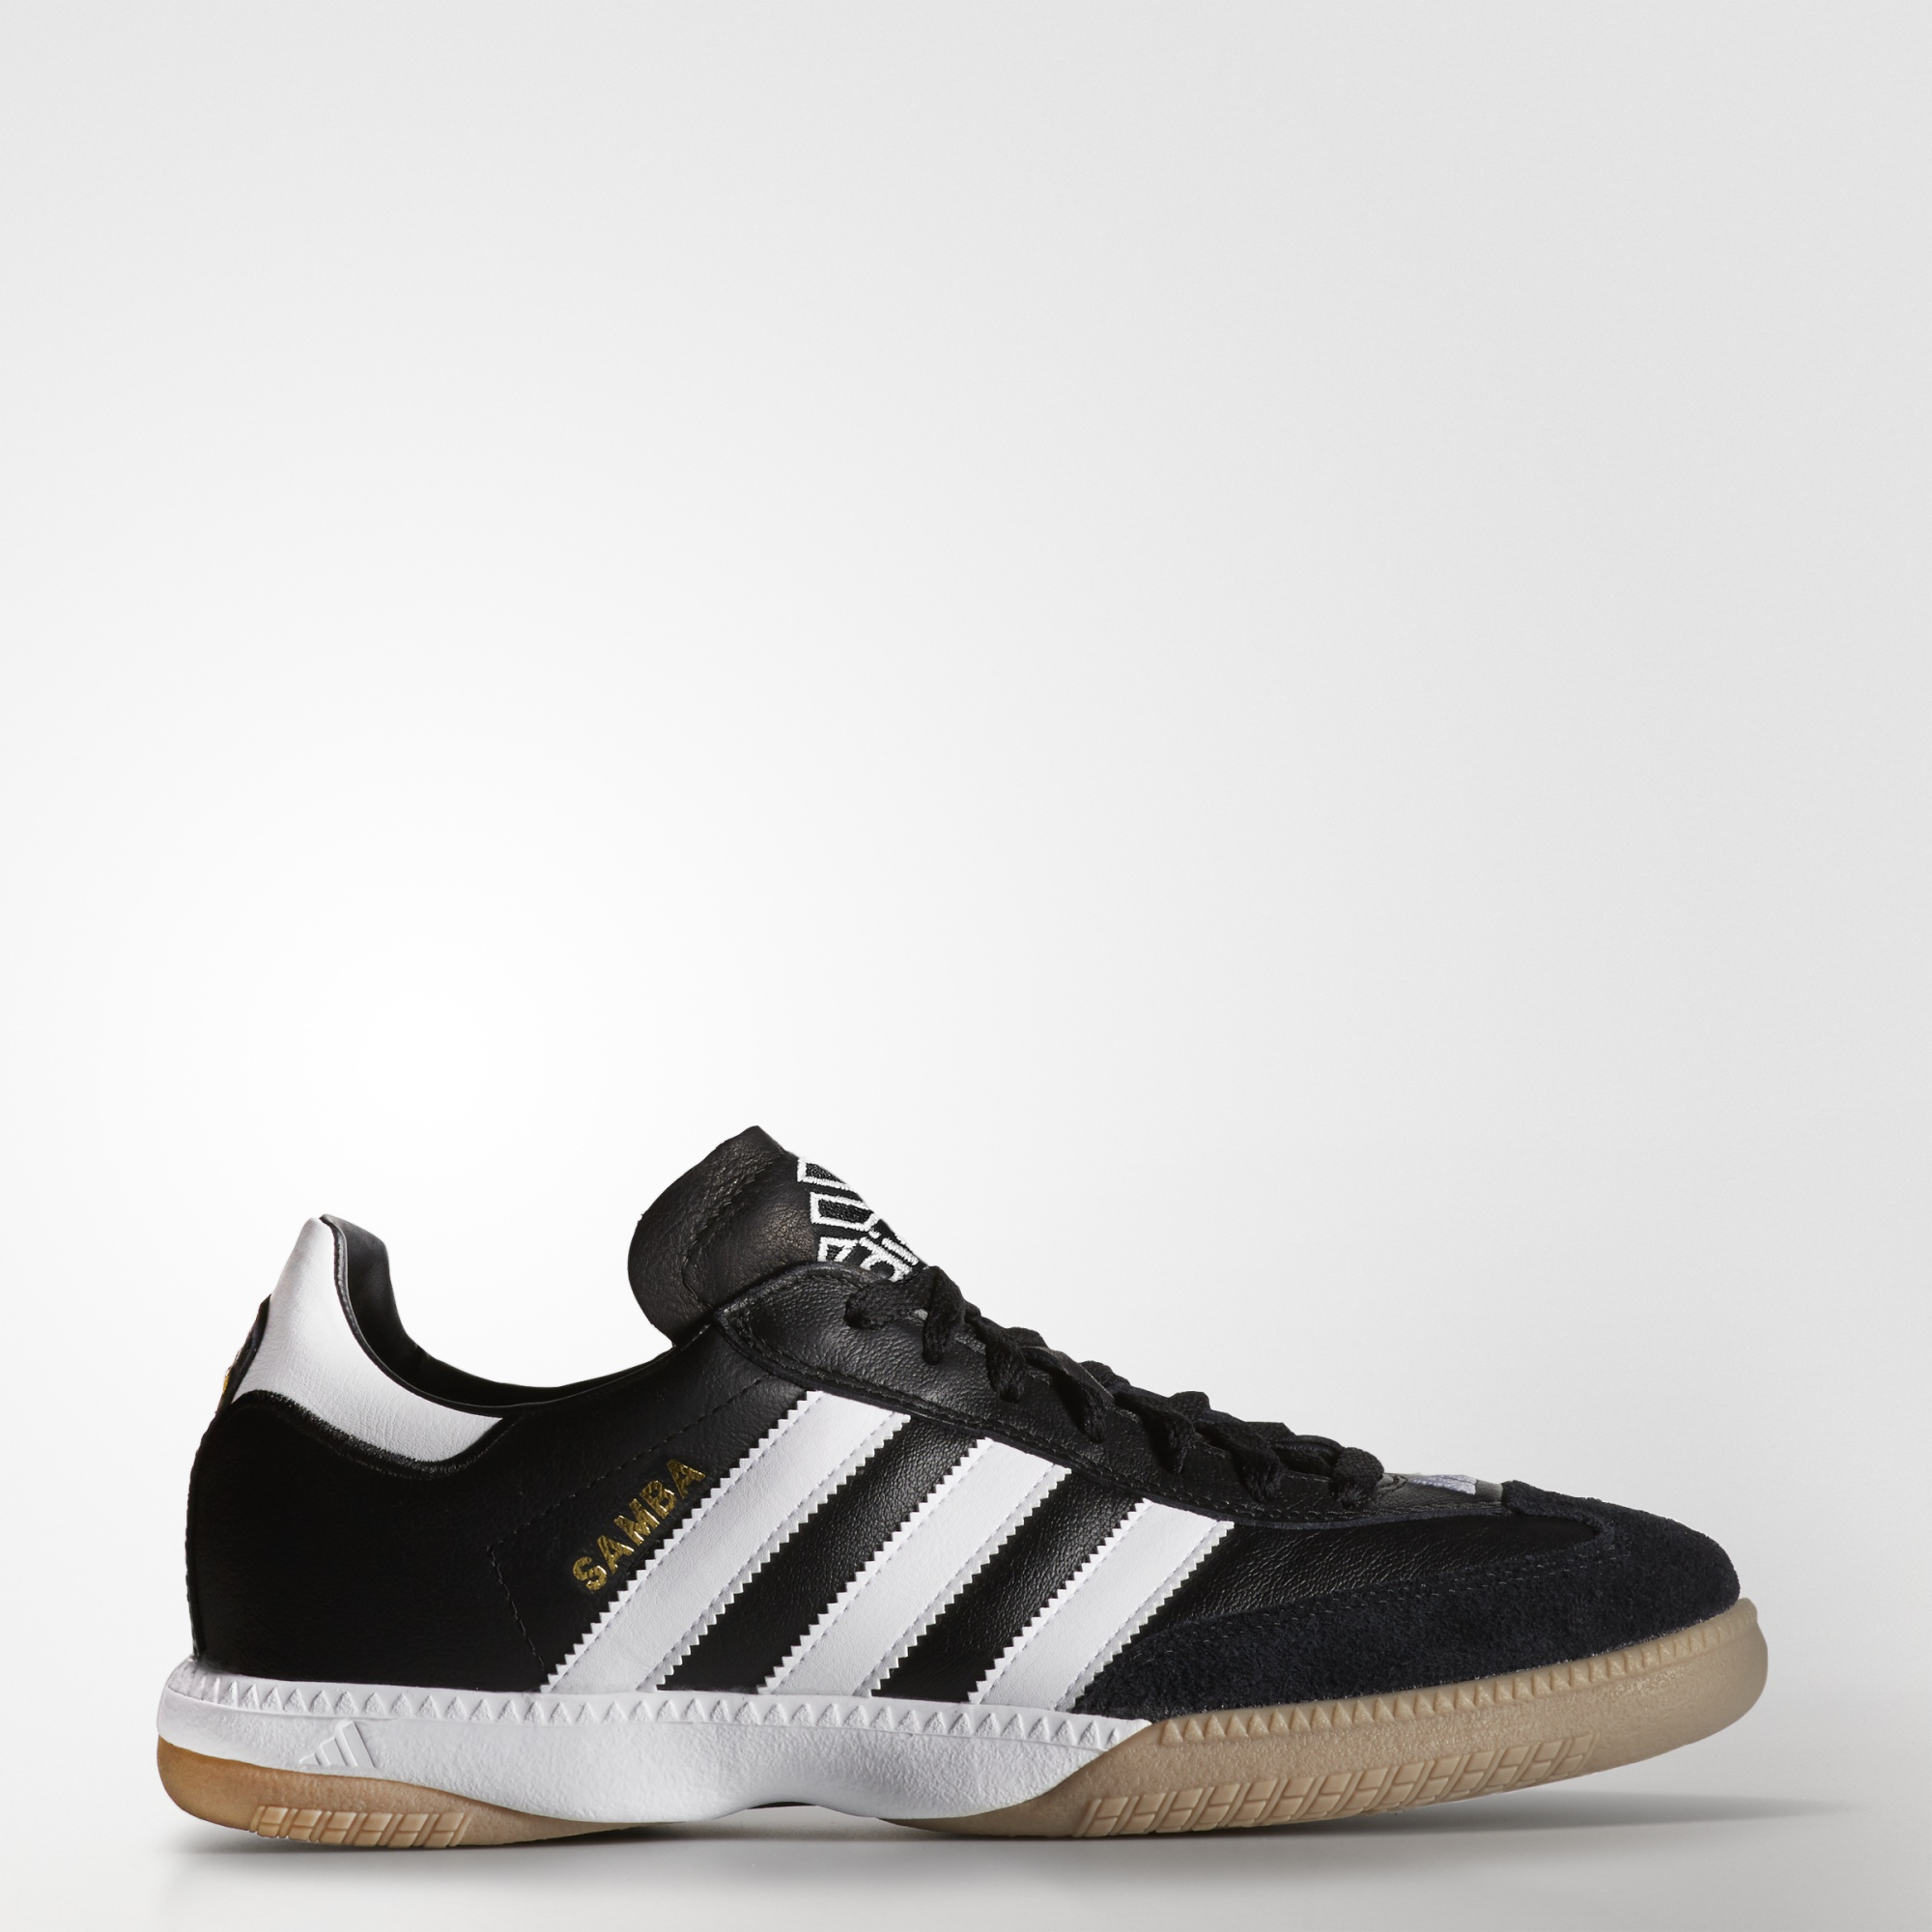 Adidas Samba Millenium Shoes